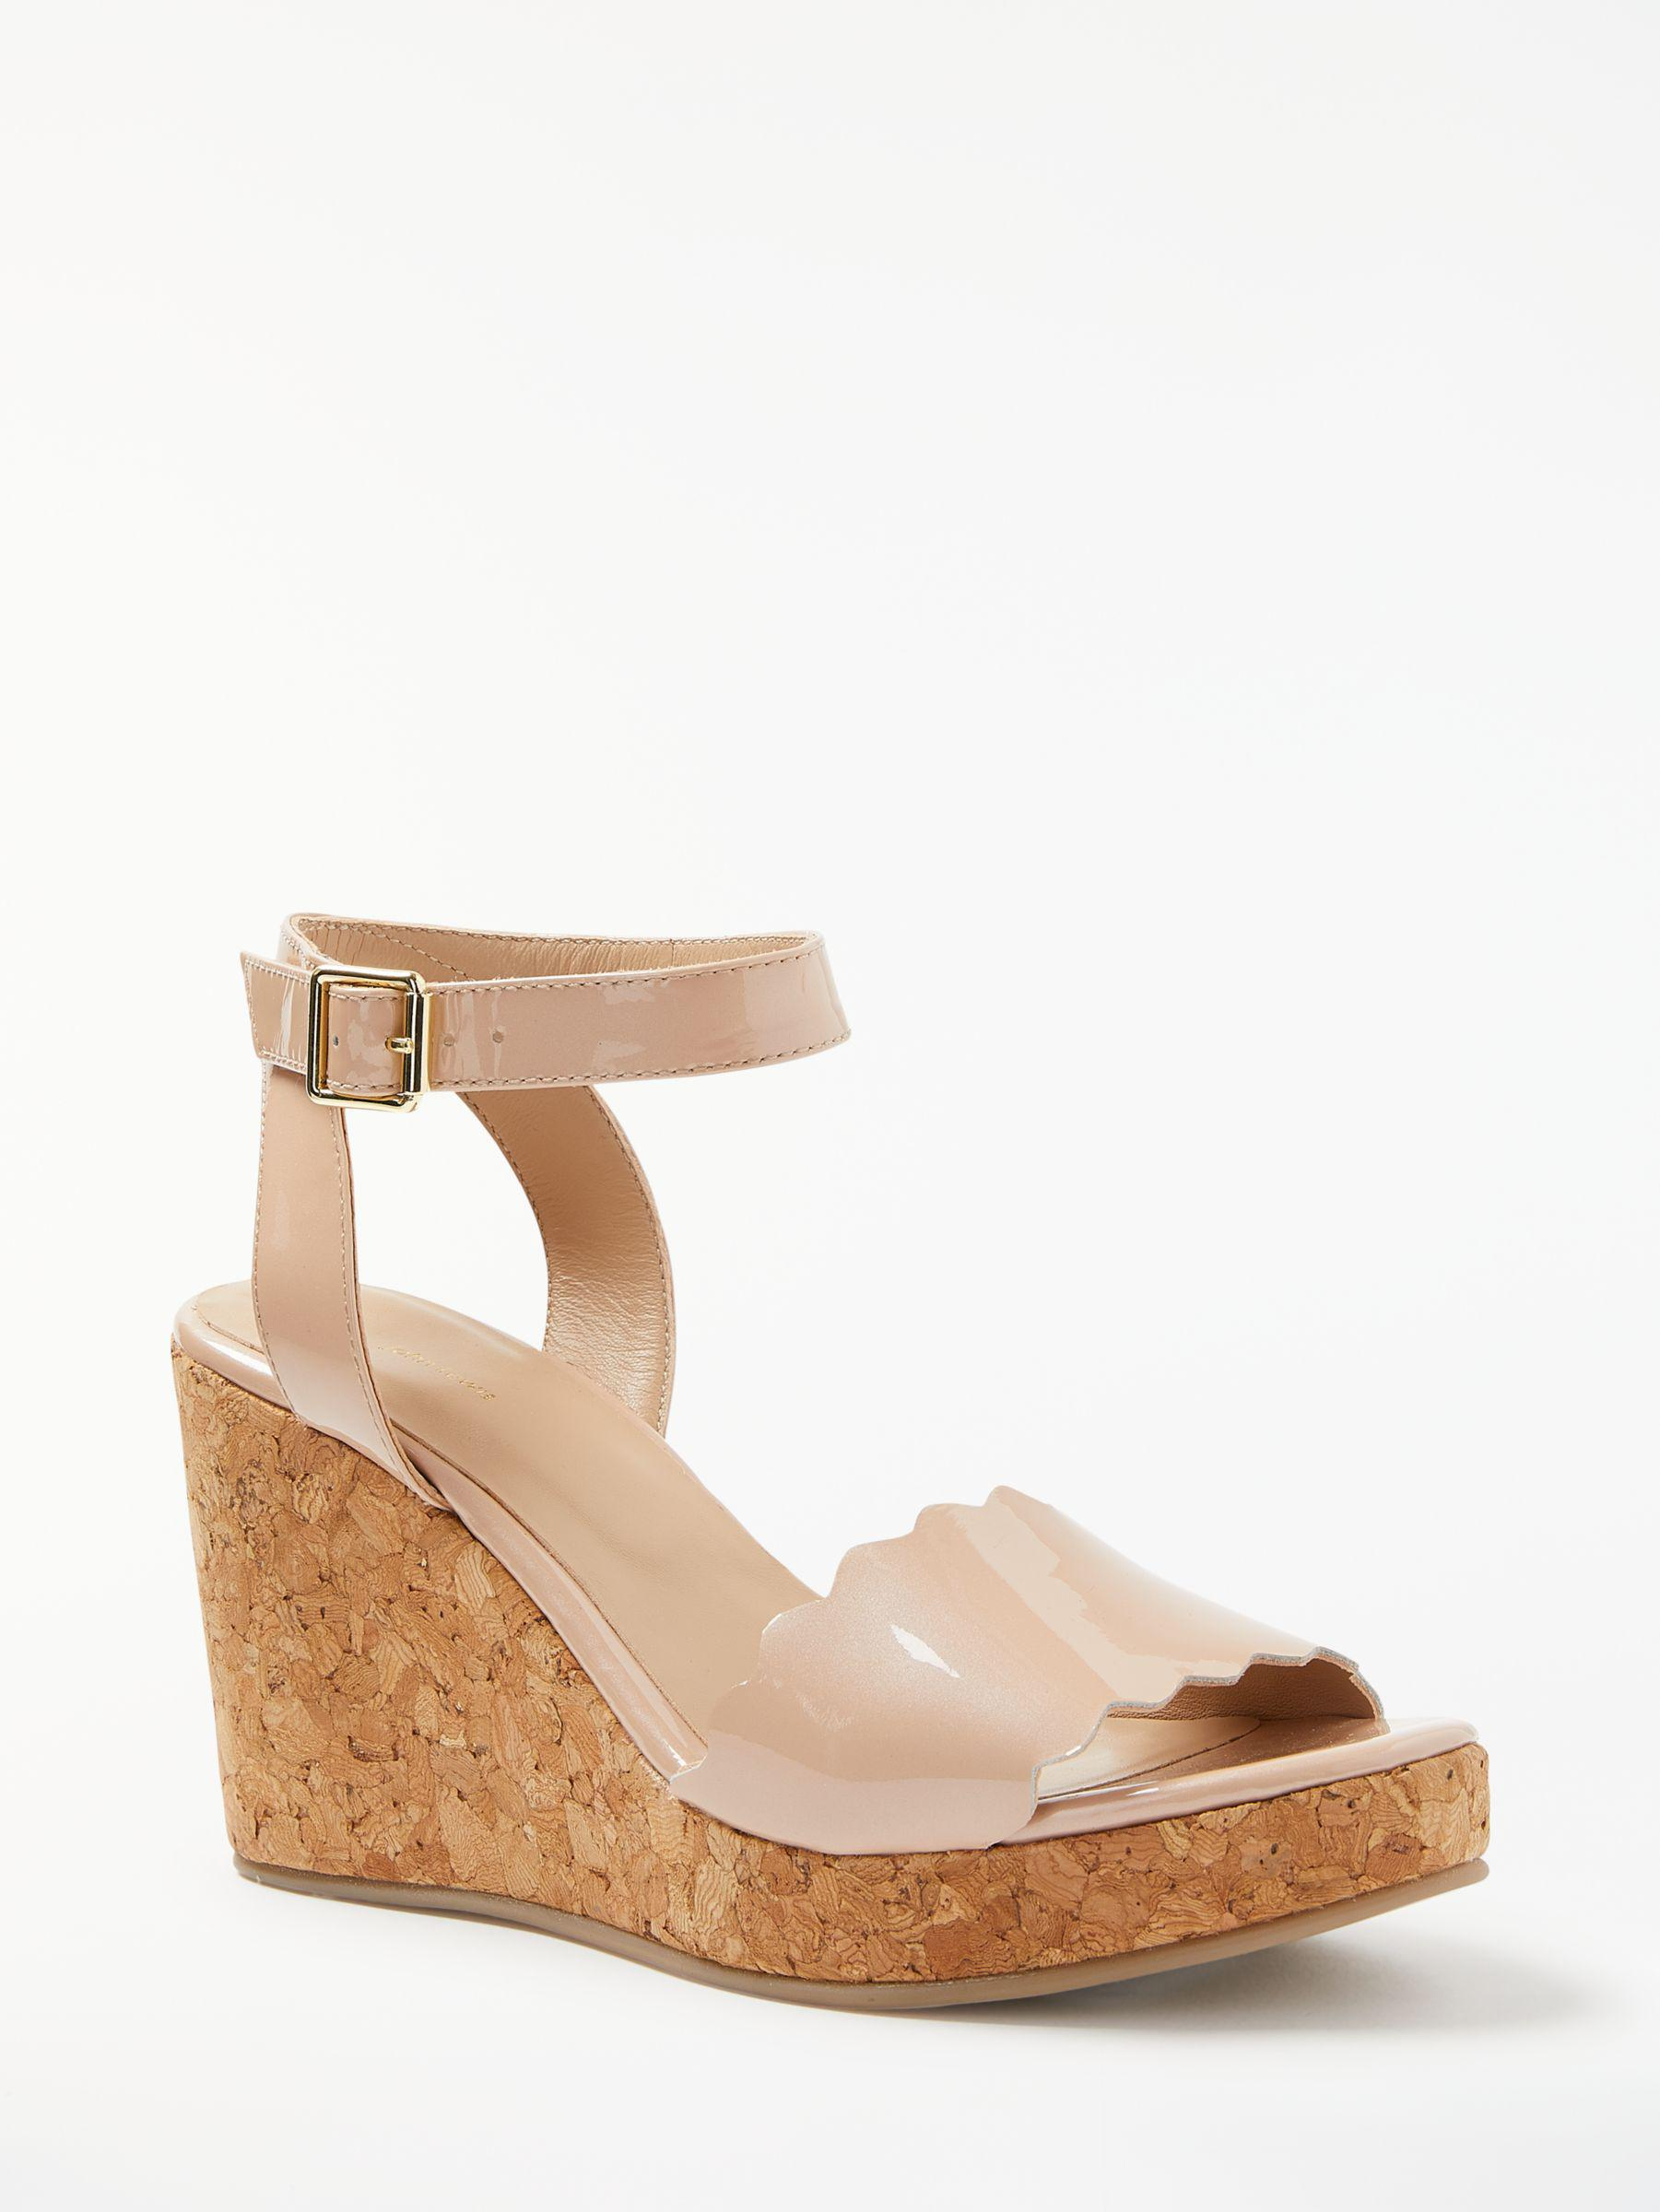 088147b44f6 John Lewis Katrina Wedge Heel Sandals in Natural - Lyst